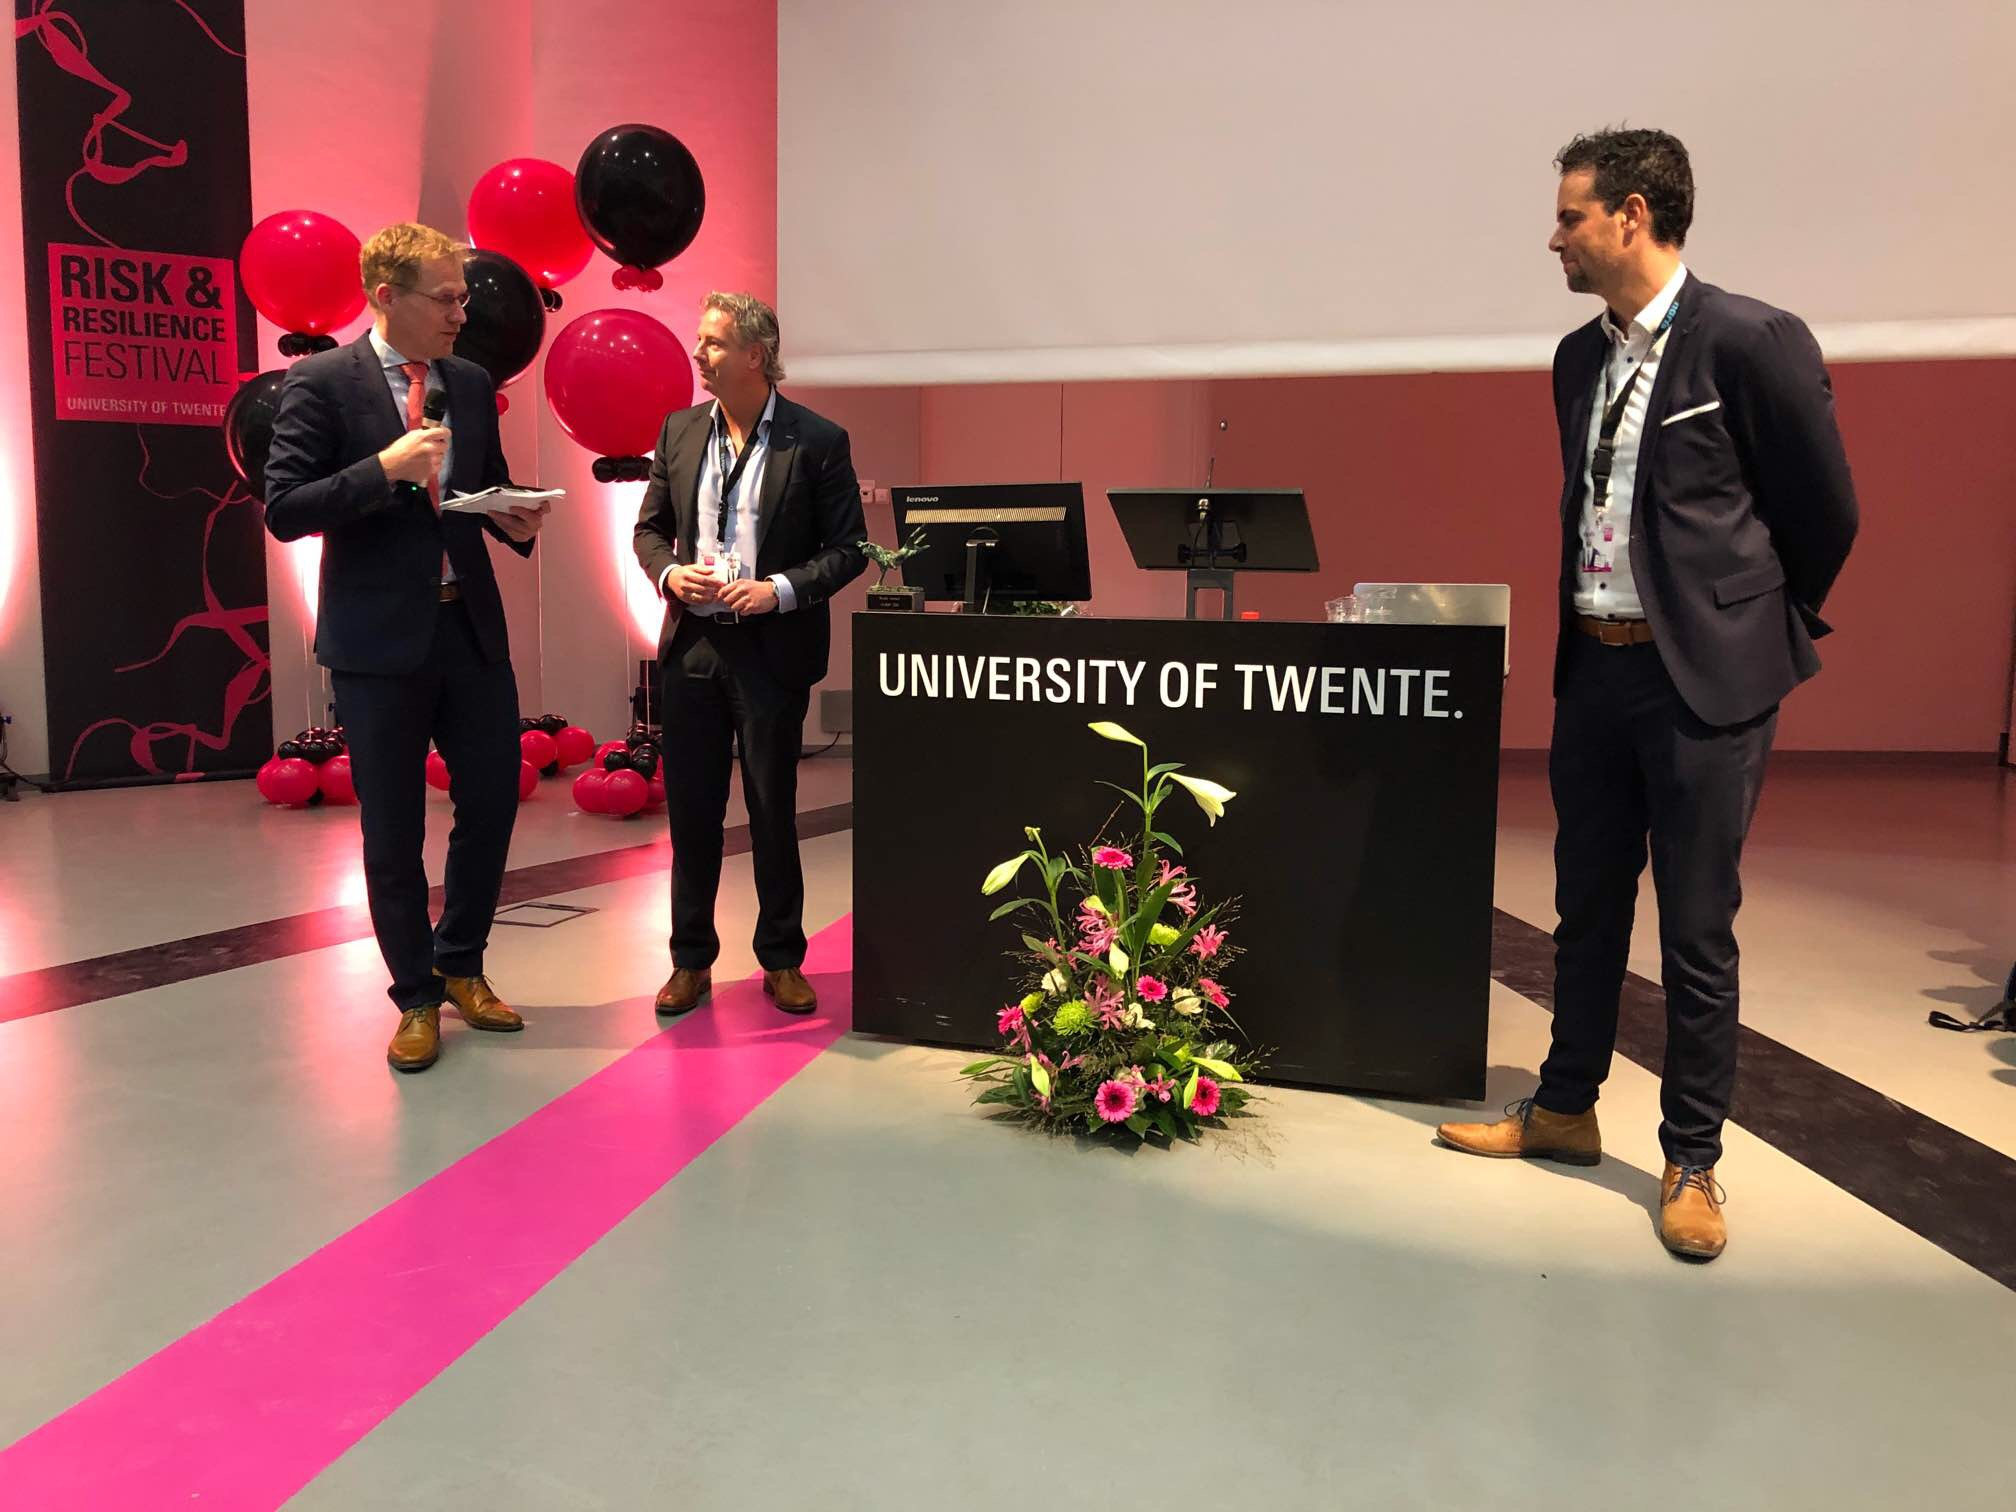 Risk Management Studie Award 2019